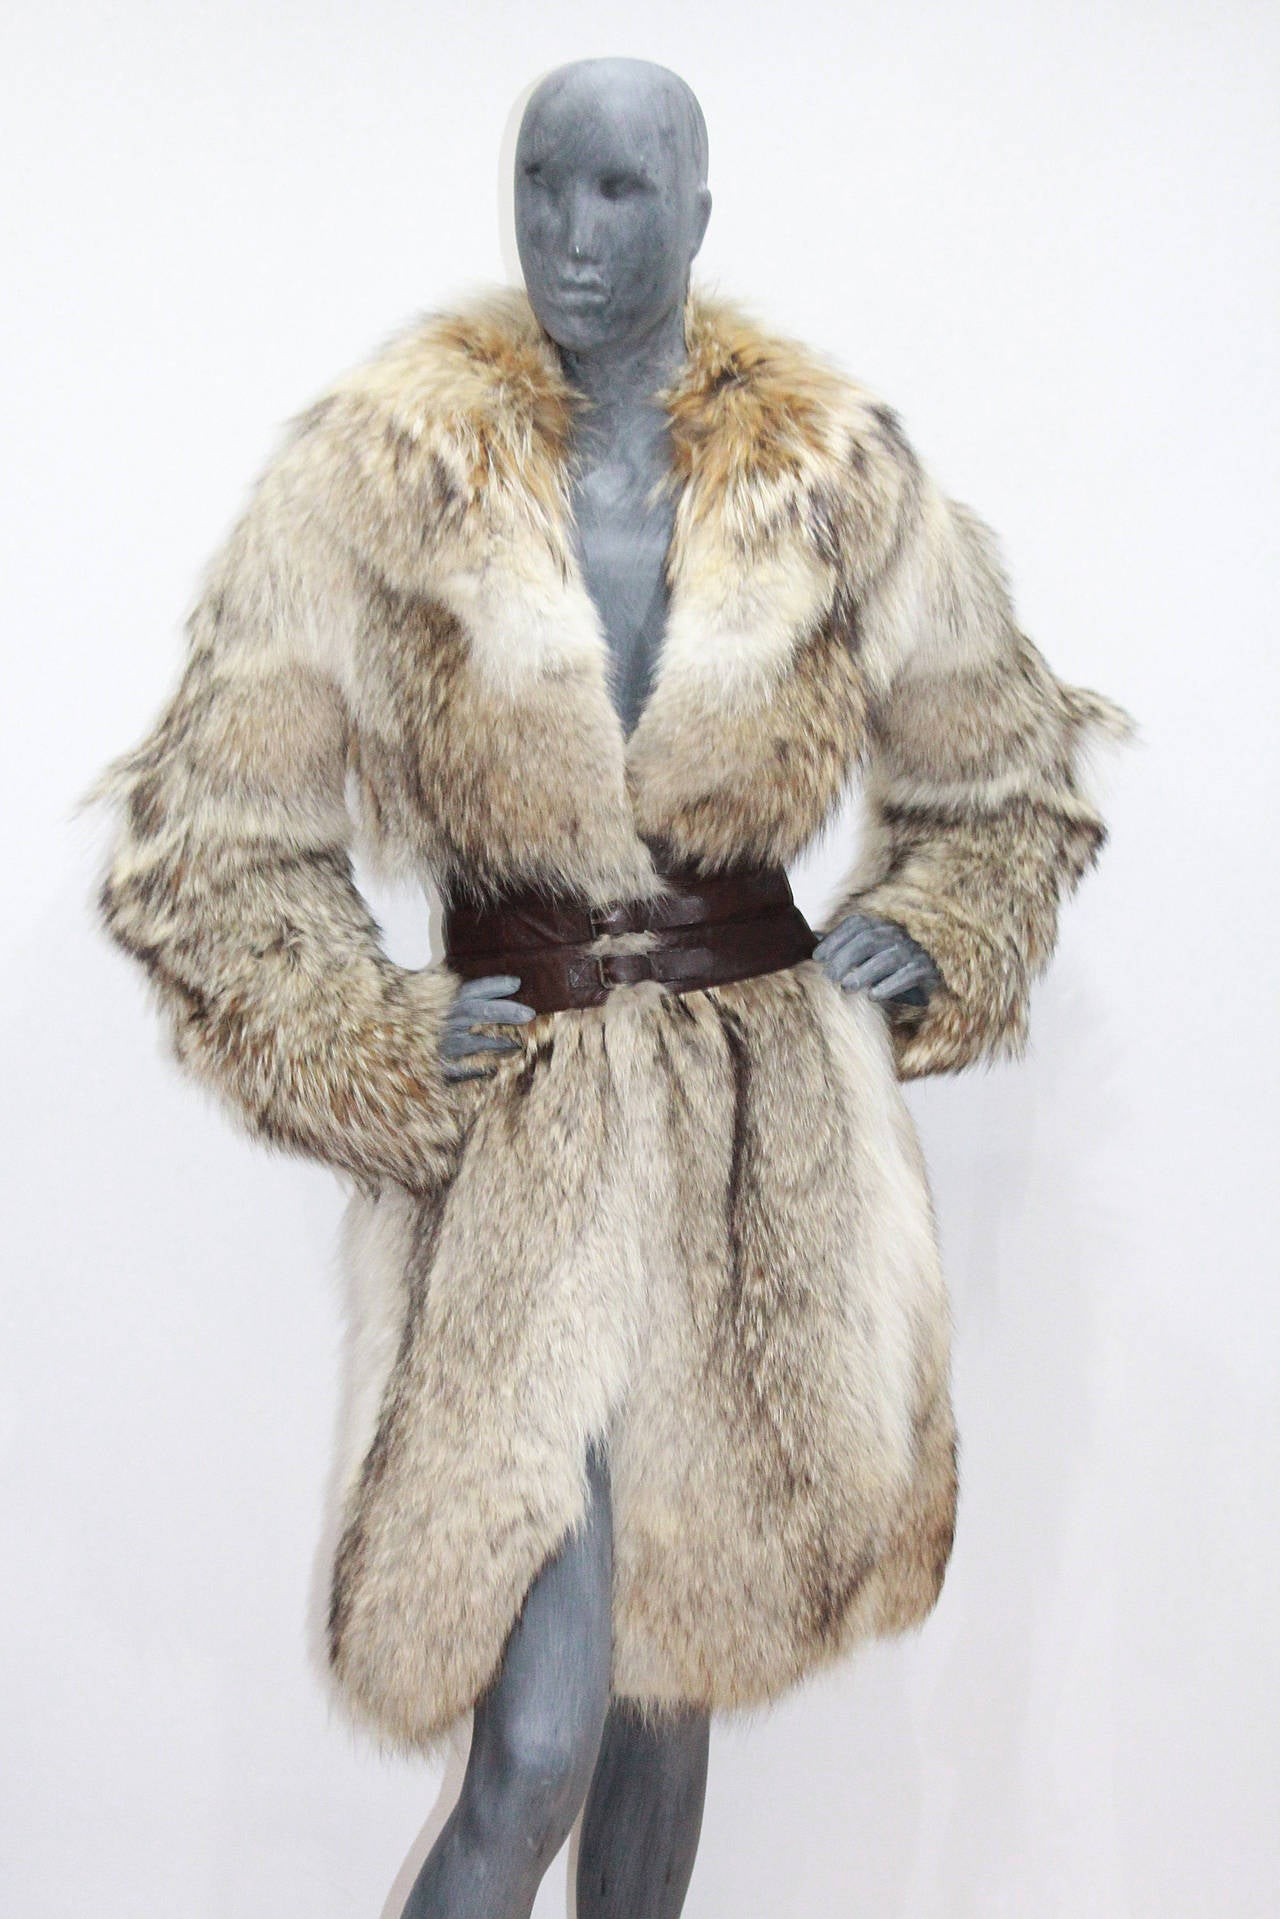 Fine and rare Alexander McQueen Corseted Coyote Fur Coat (Pre-Death) Circa 2006 4